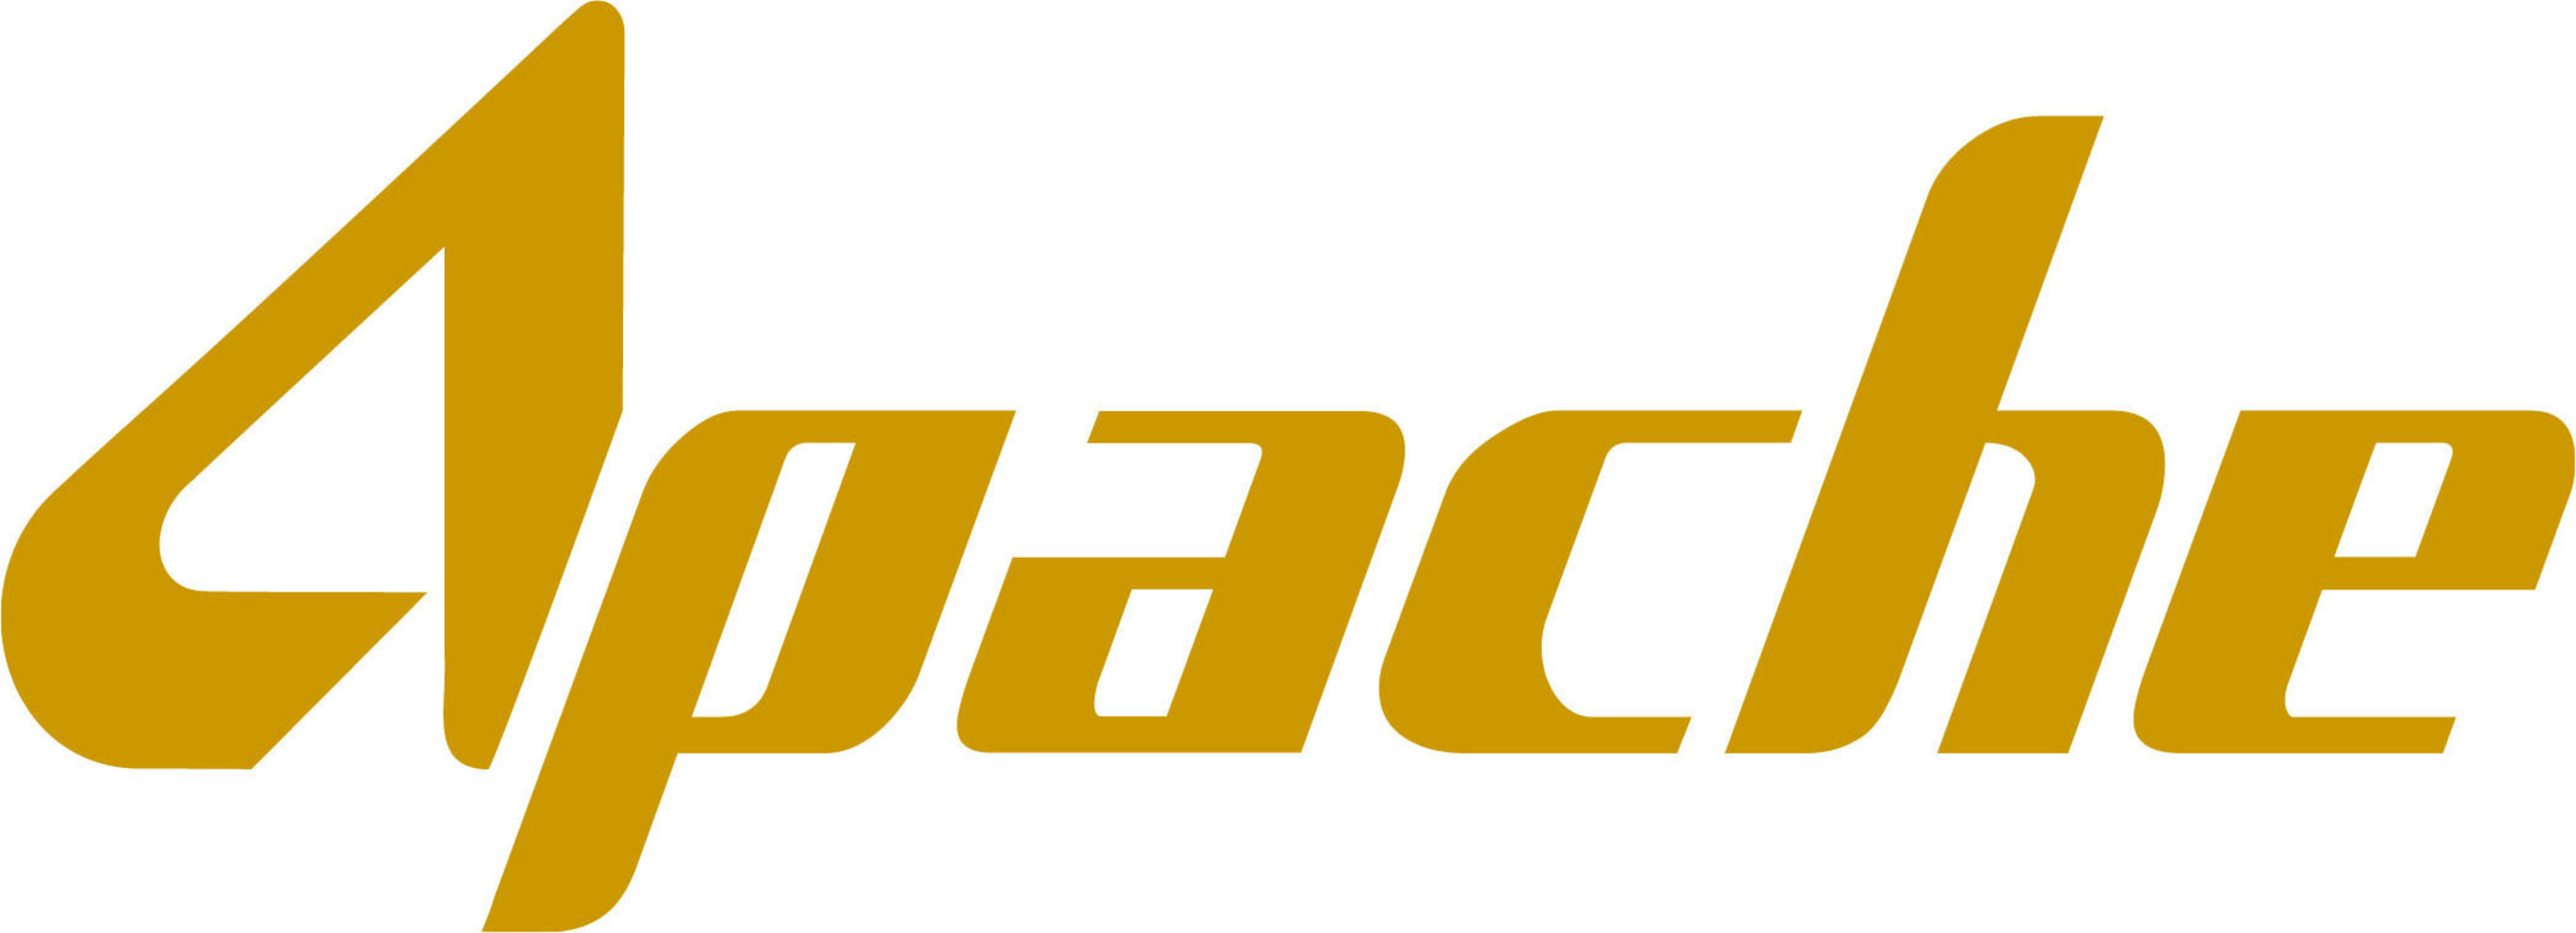 Logo for the Apache Corporation. More information about Apache can be found at www.apachecorp.com.